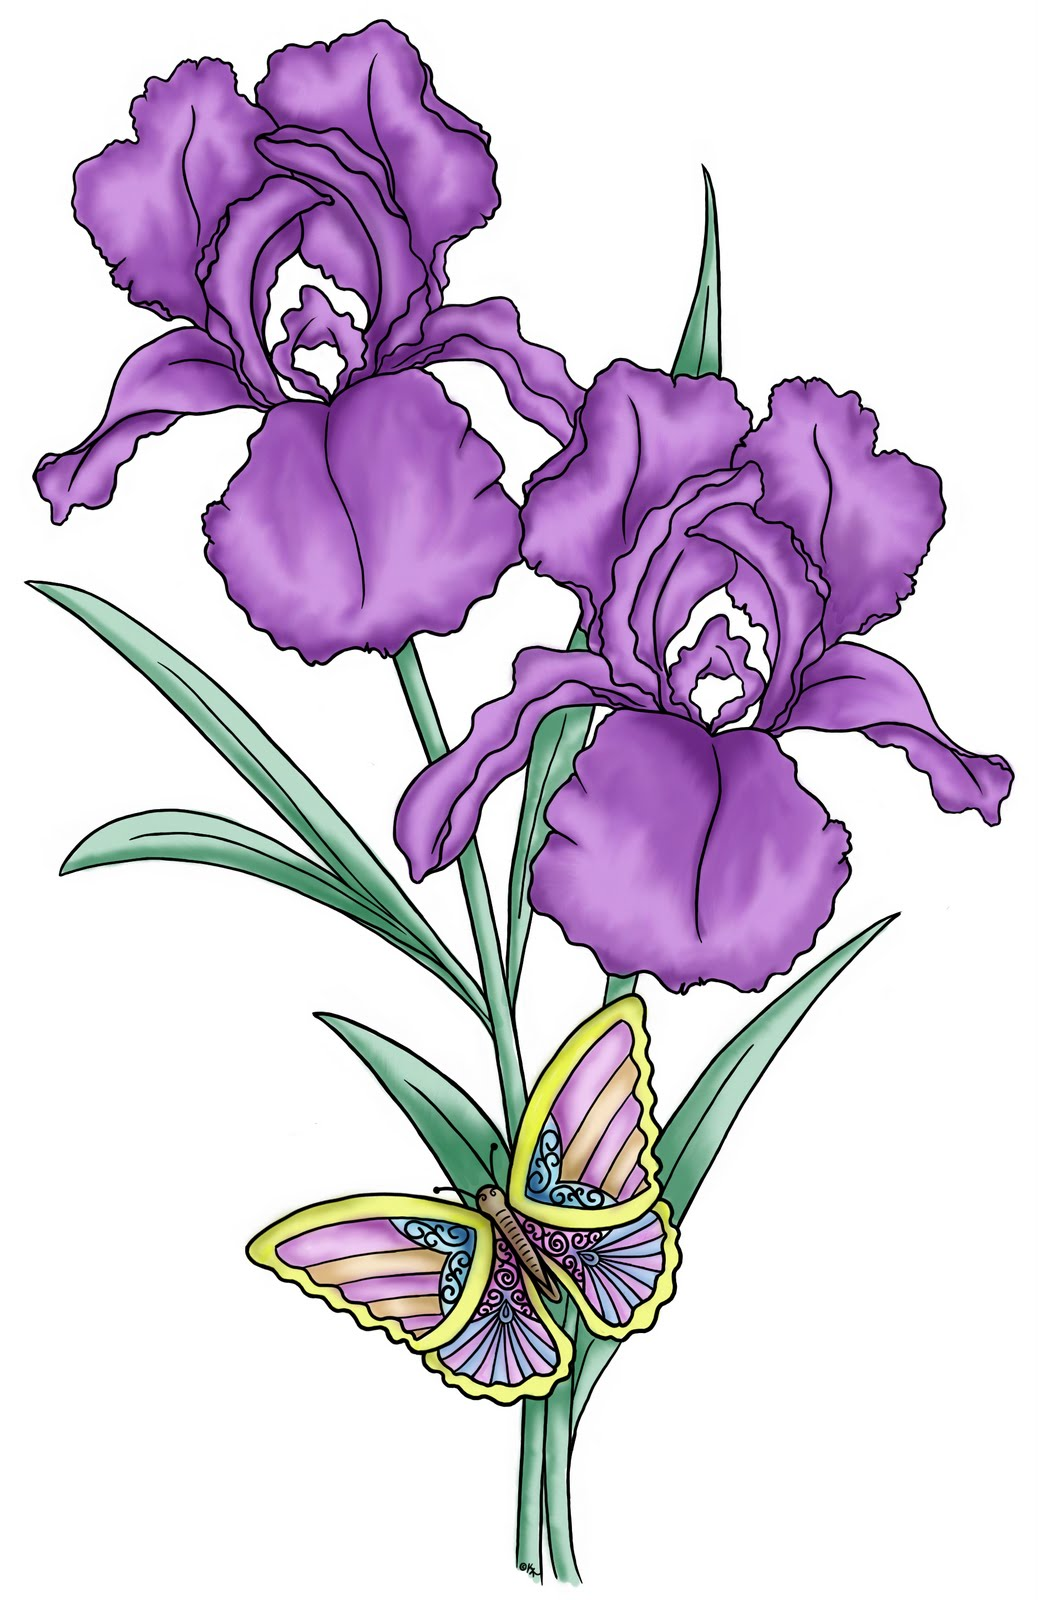 1000+ images about Irises on Pinterest.